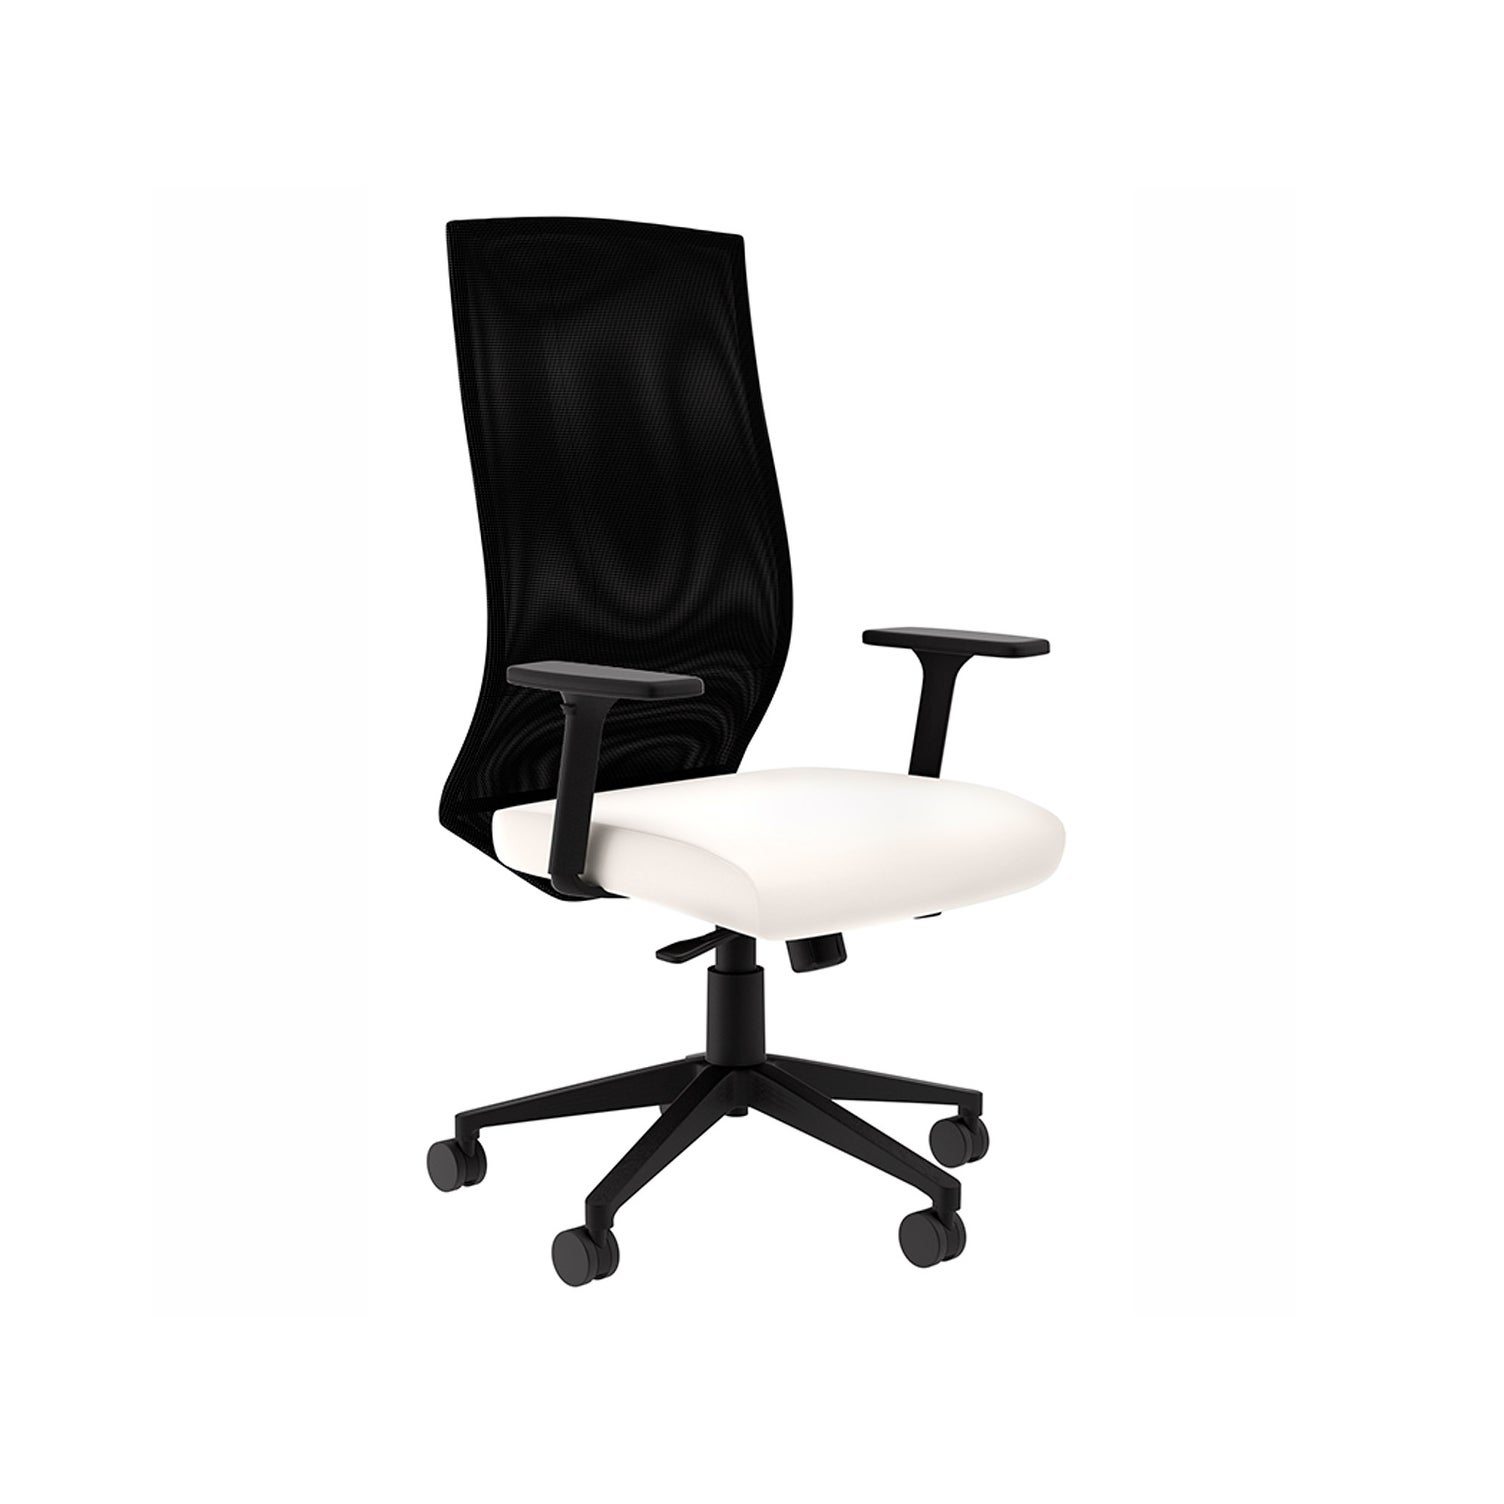 competitive price 84940 db401 Maxim MT White Leather Computer Chair